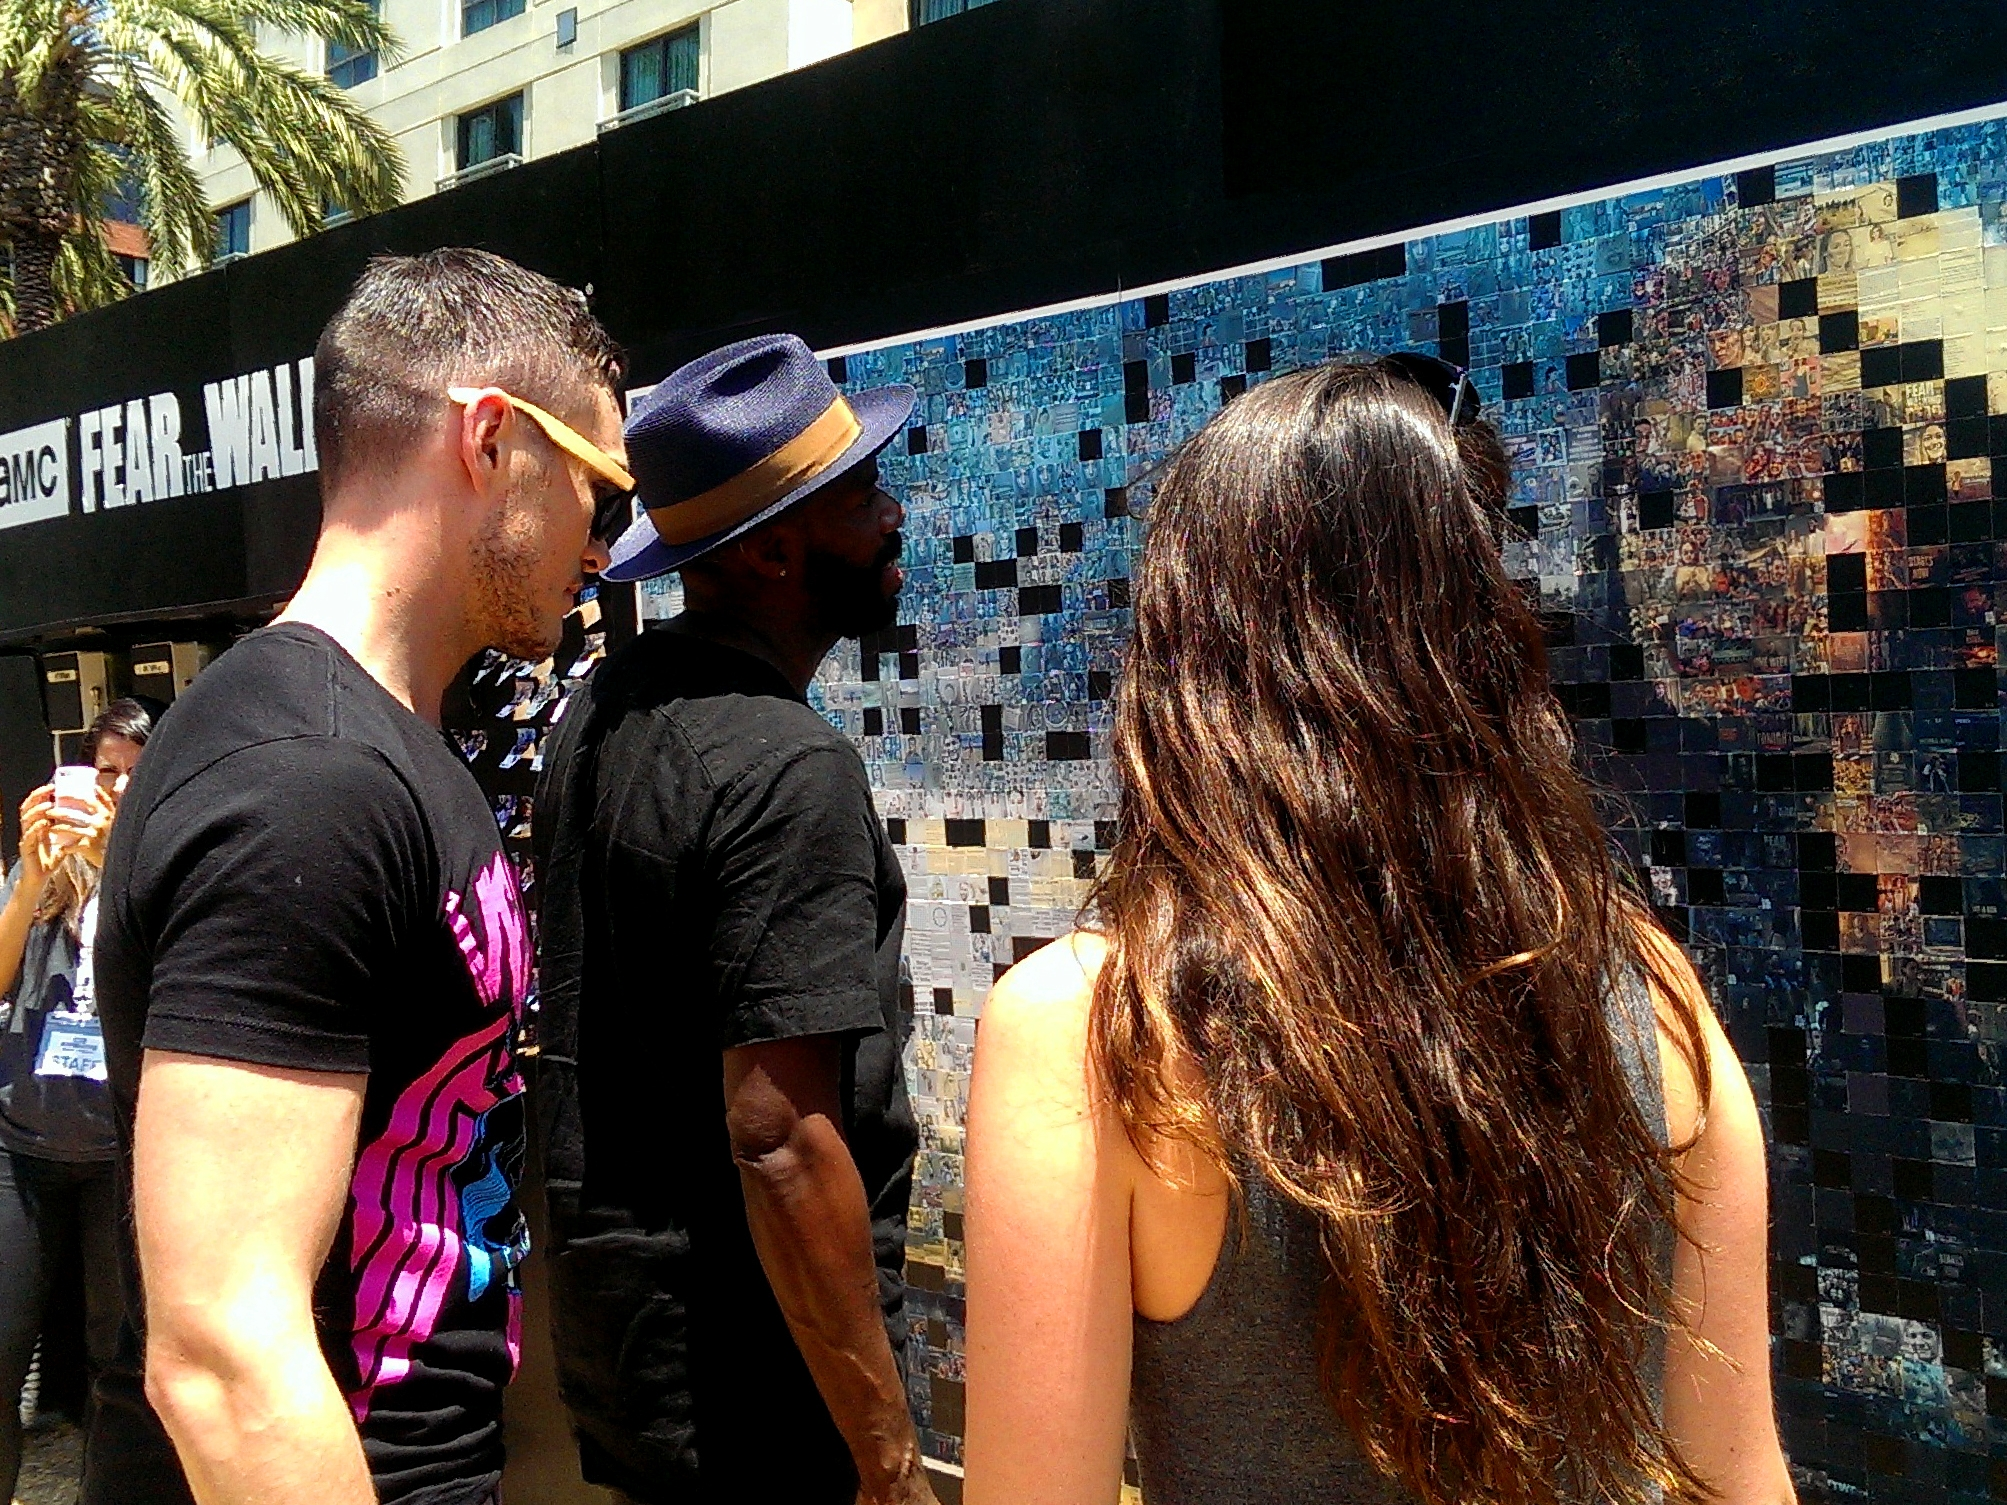 Hashtag Mosaics - Billboard-sized works of art created by your guests in real-time using your event's hashtag.